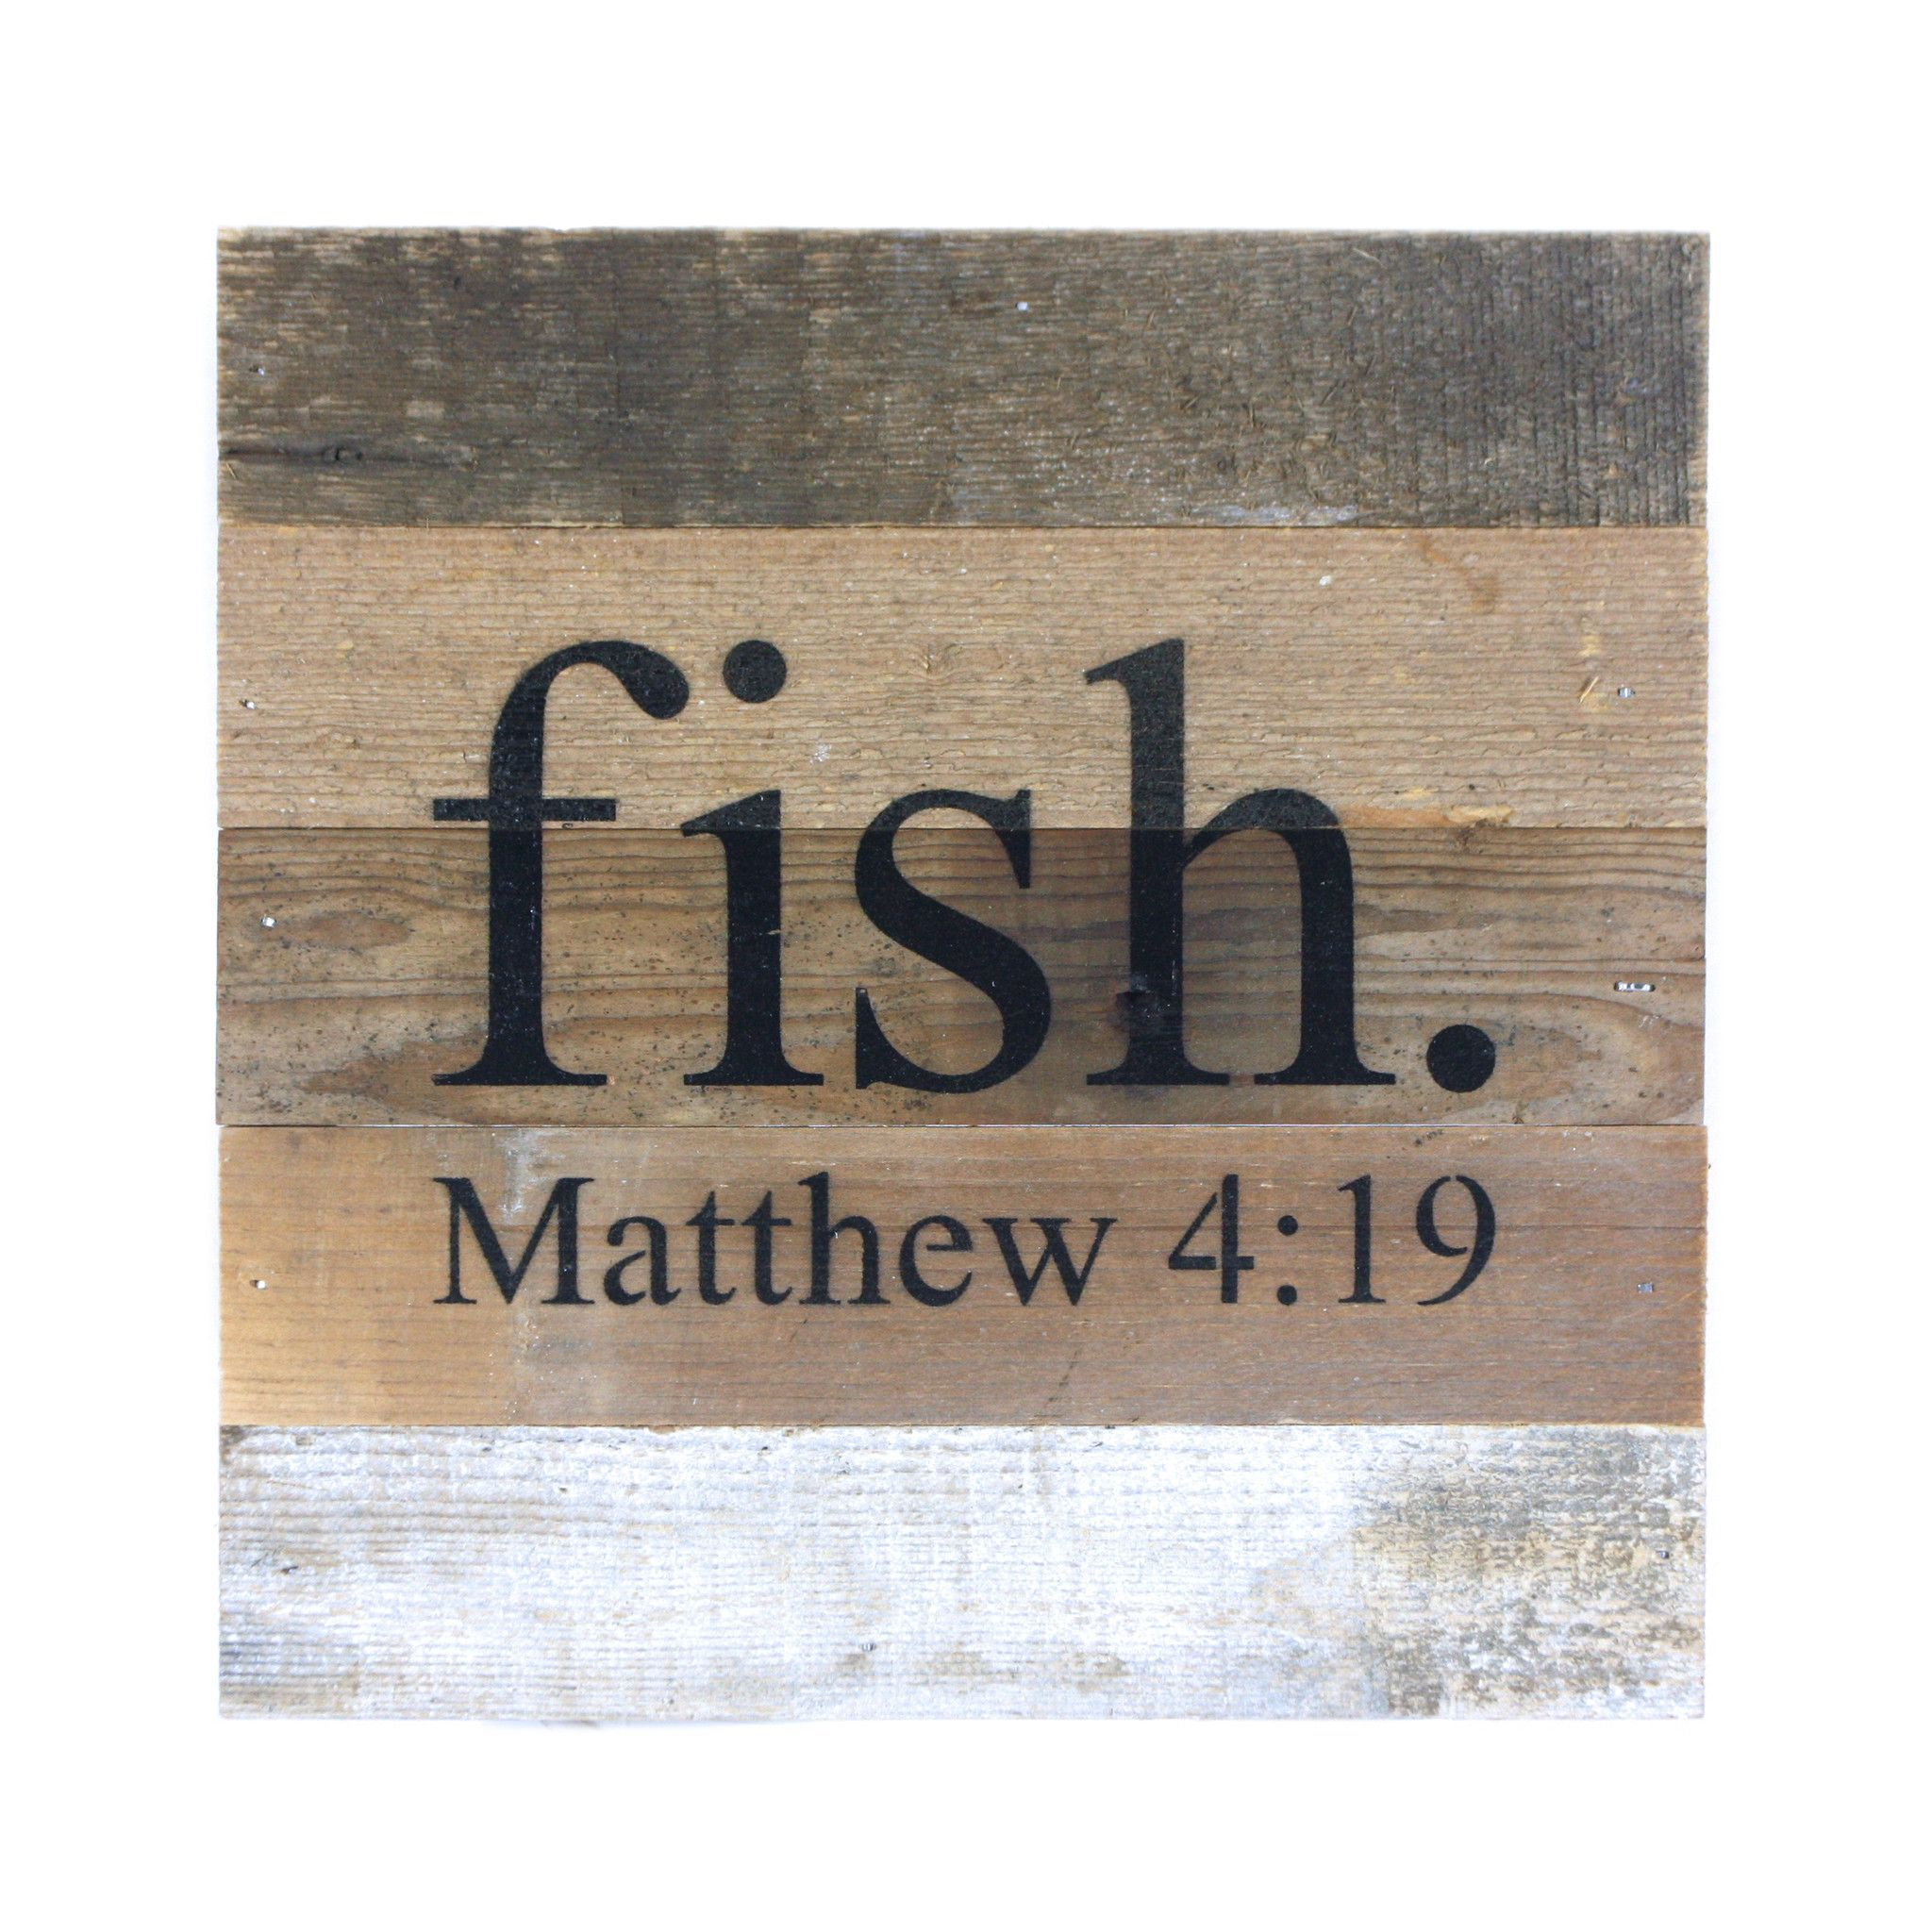 - Inspirational rustic wall art sign with the angler and fisherman in mind. Handmade in the USA from reclaimed, re-purposed wood to tell your story or message with the beauty of vintage materials. - S